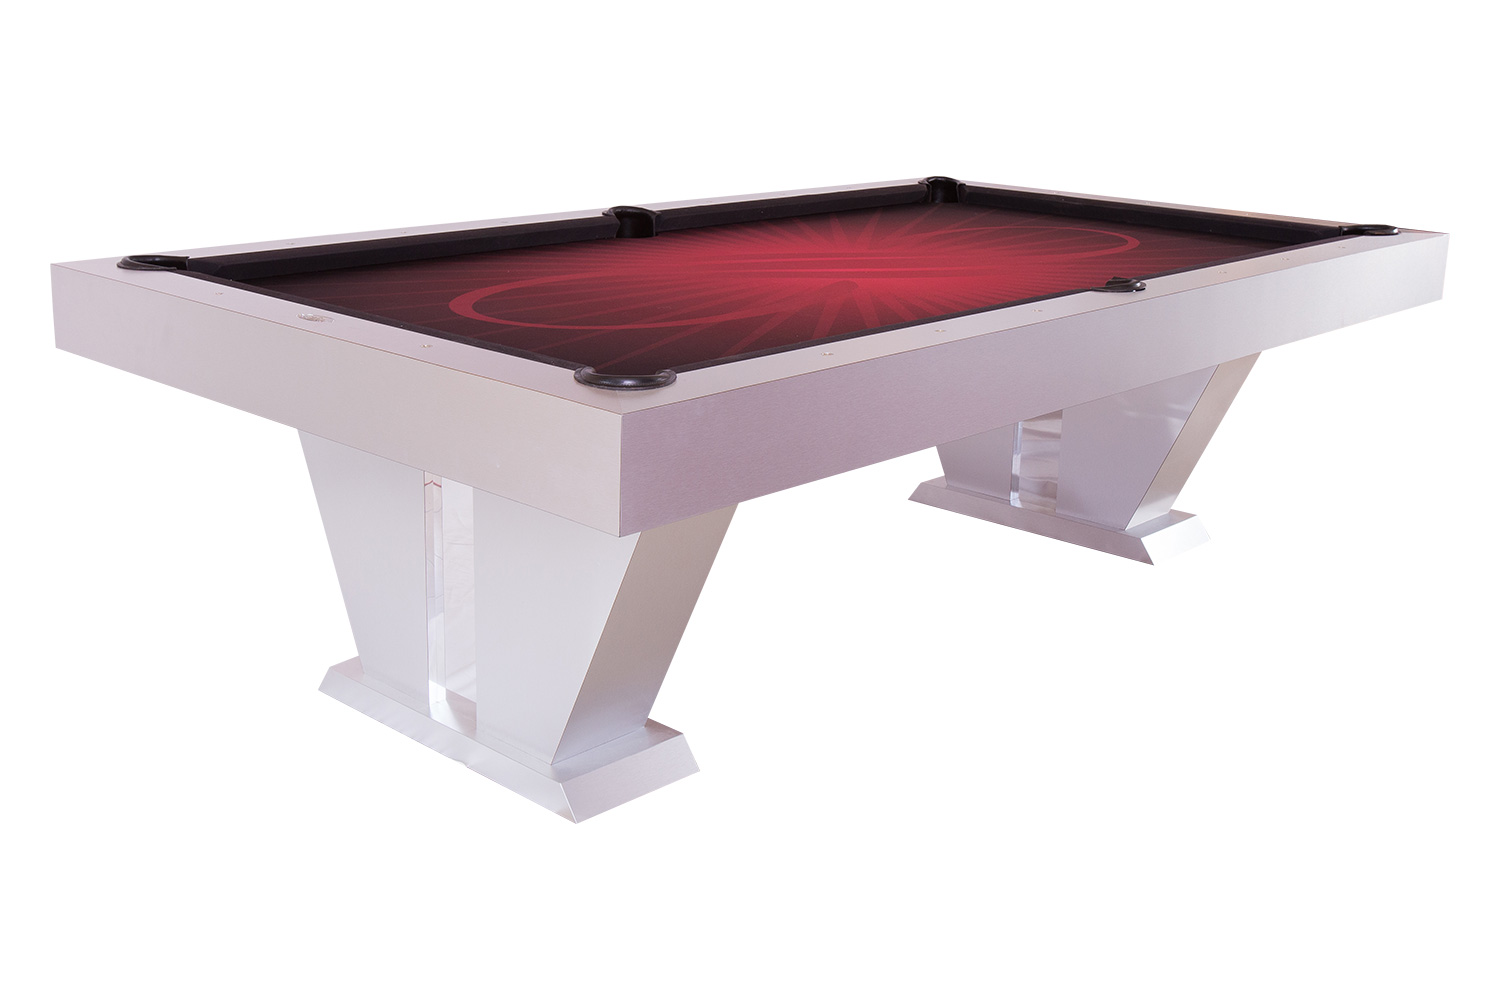 Anubis Custom Billiards Modern Pool Table